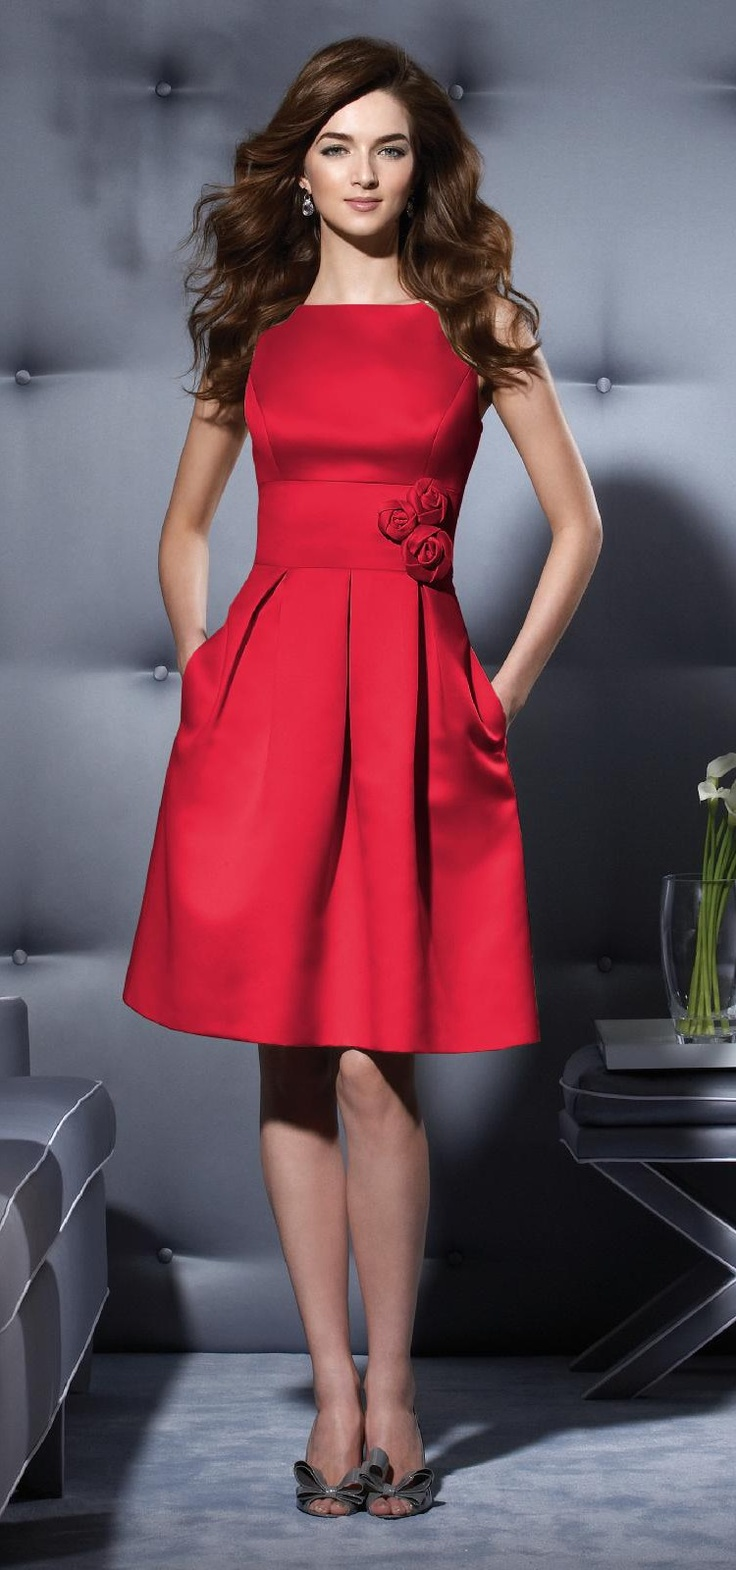 Christmas dress ideas for office party - Cute Christmas Party Dress Flame